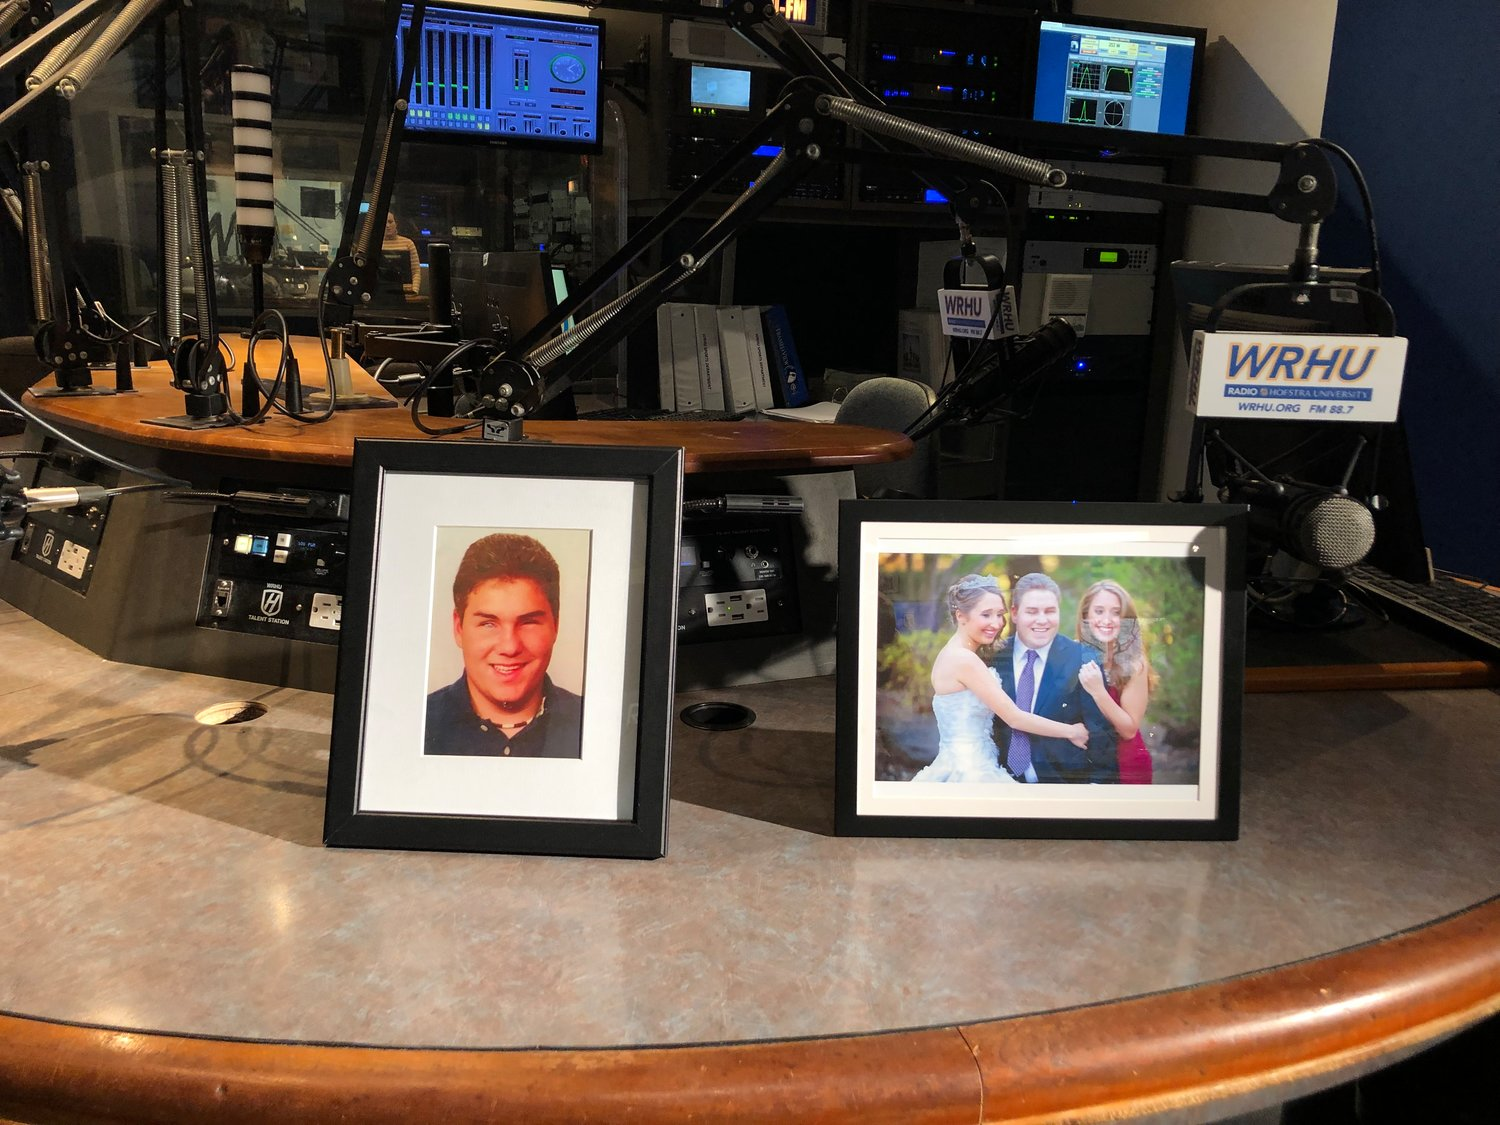 Two photos of Richie Cavallaro in the WRHU Radio Hofstra University Richard Phillip Cavallaro studio.